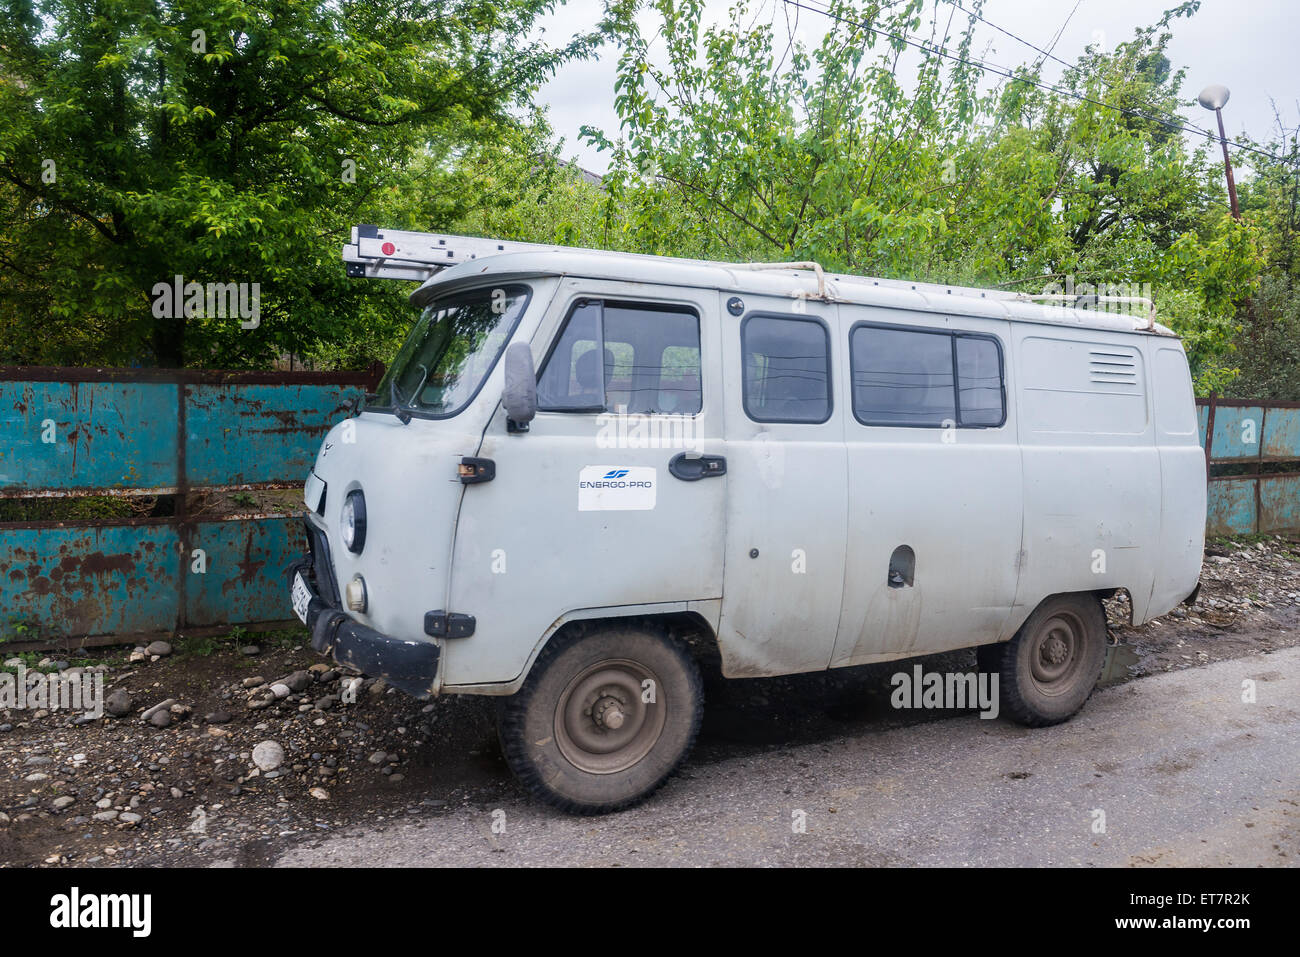 russian uaz 452 minibus in georgia stock photo royalty free image 83764987 alamy. Black Bedroom Furniture Sets. Home Design Ideas